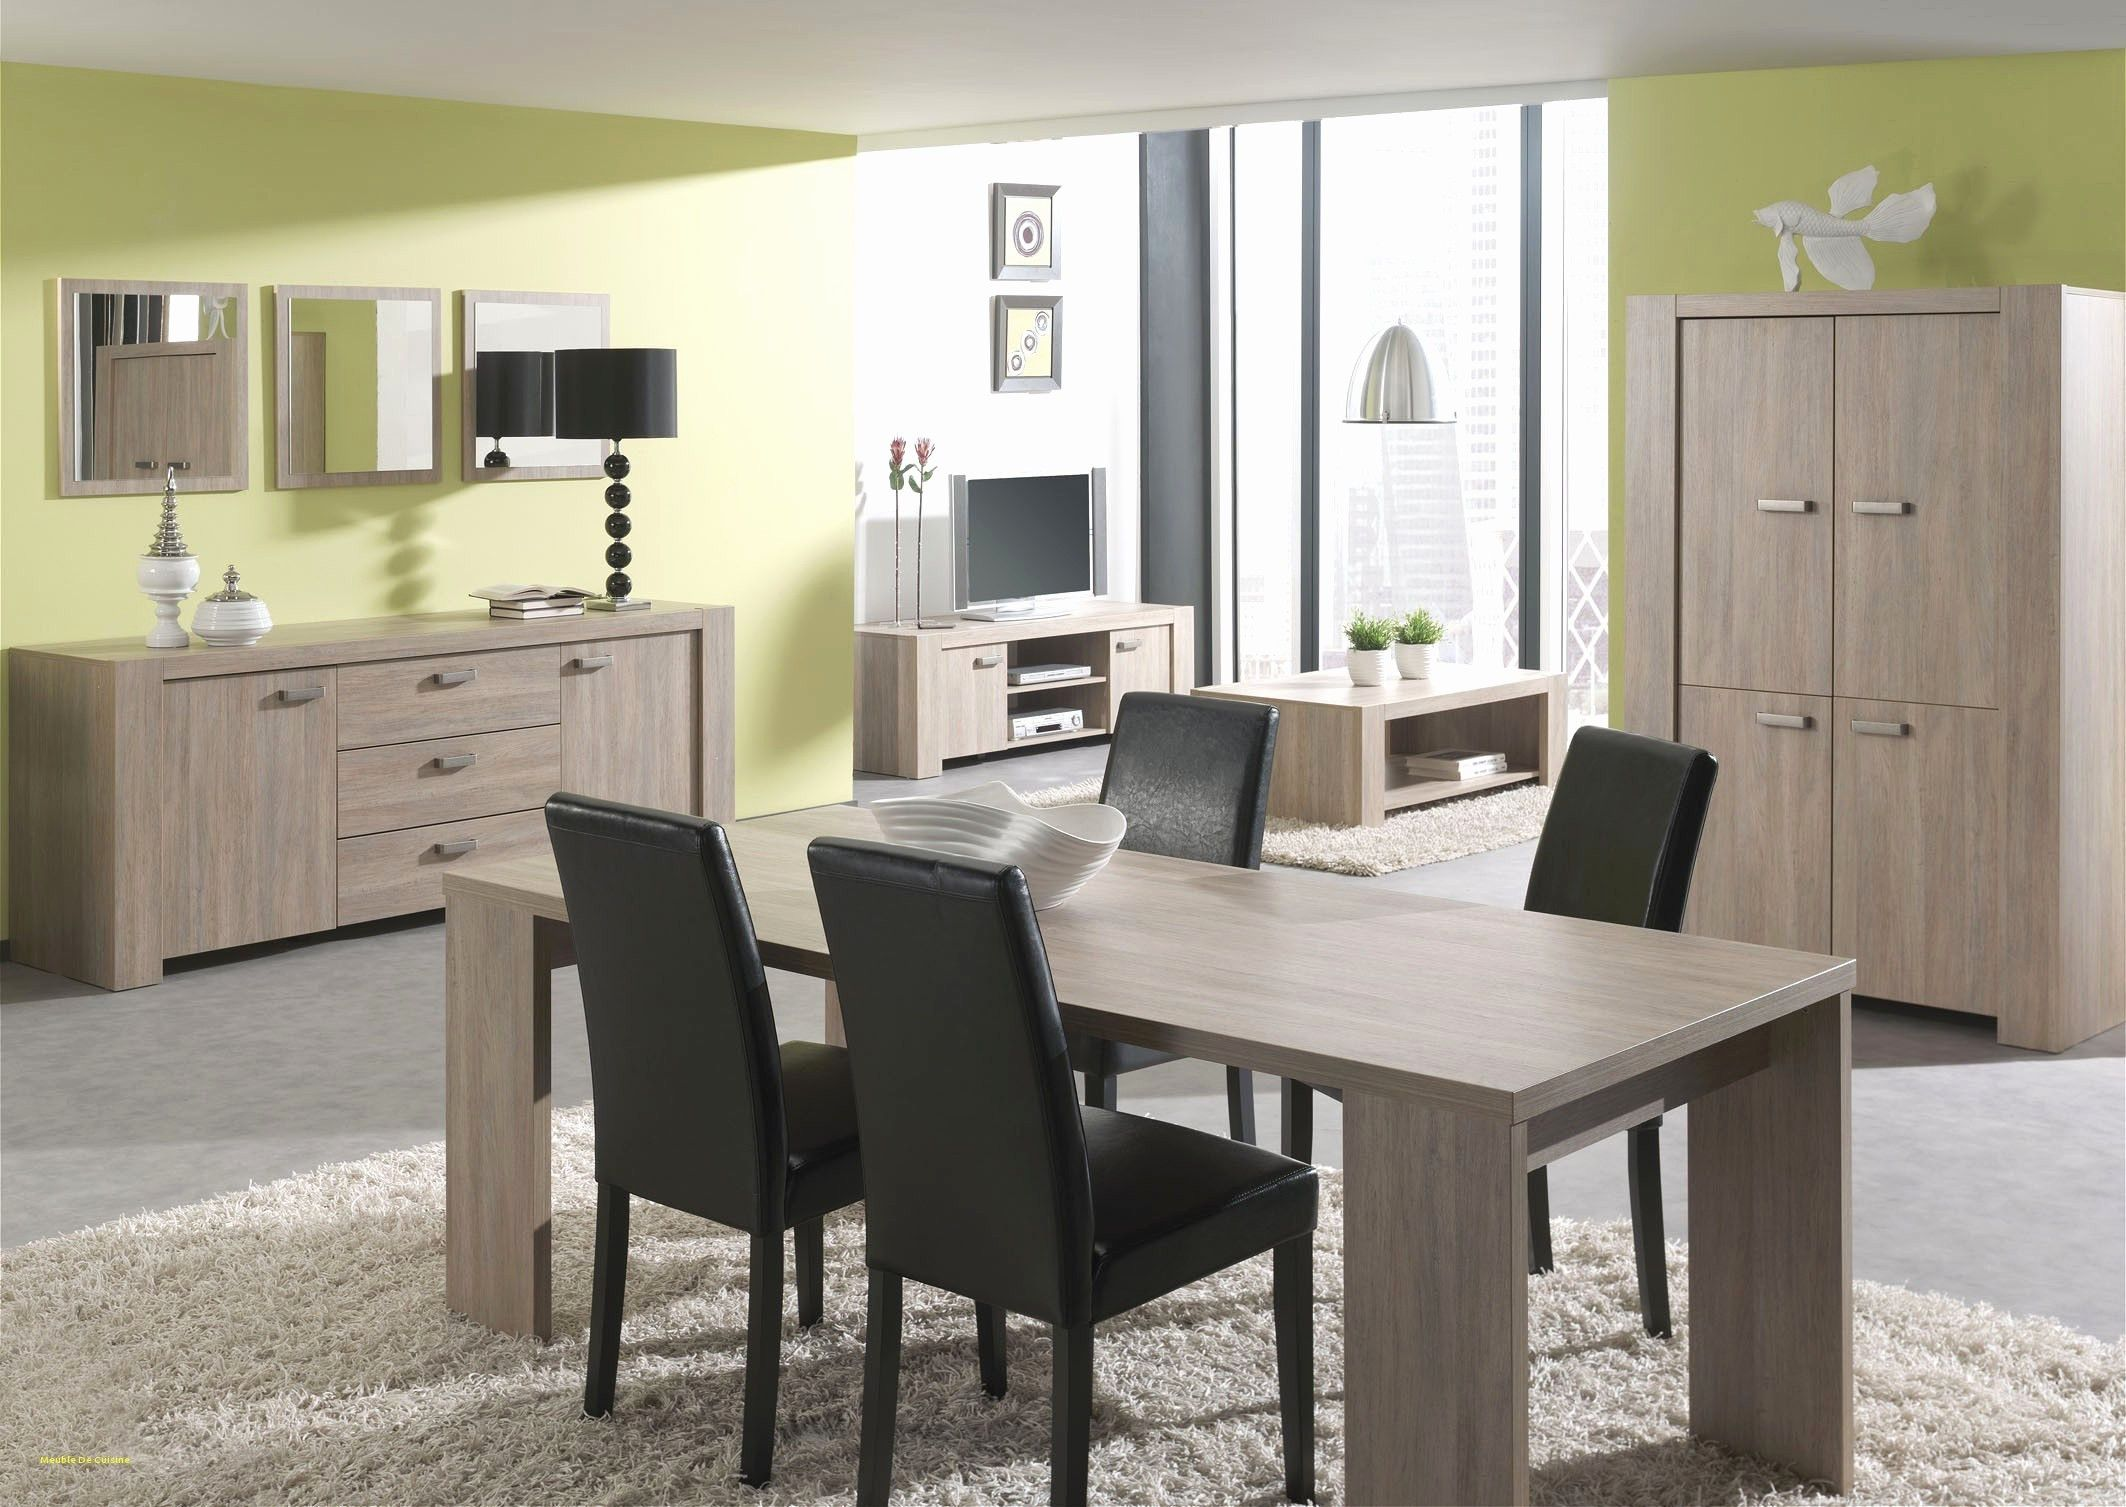 Awesome Plan Cuisine 12m2 Home Decor Home Dining Room Design